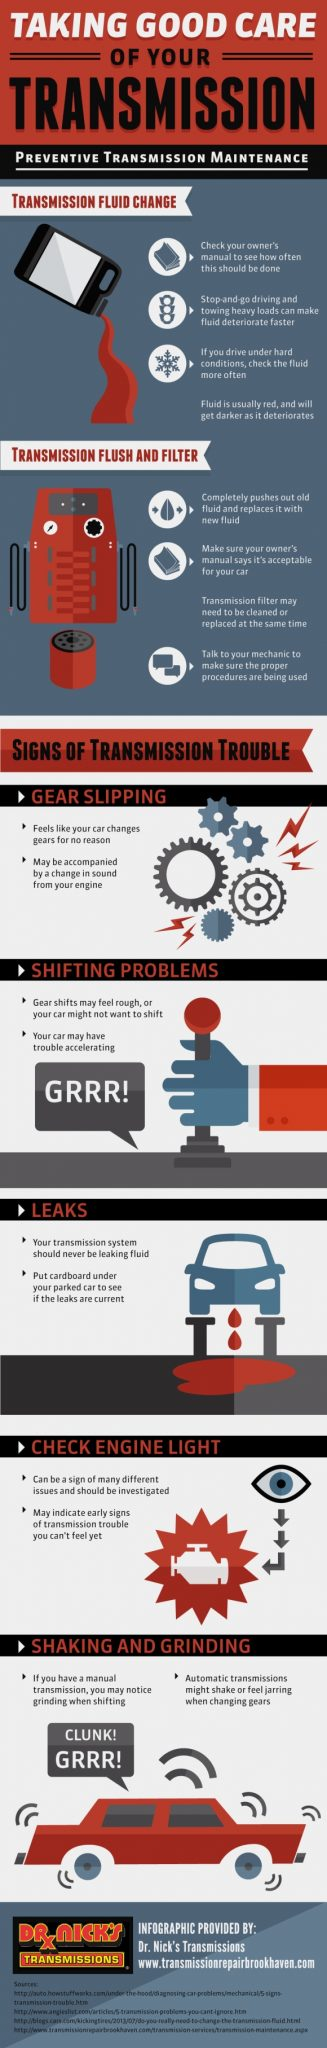 Taking-Good-Care-Of-Your-Transmission-Infographic